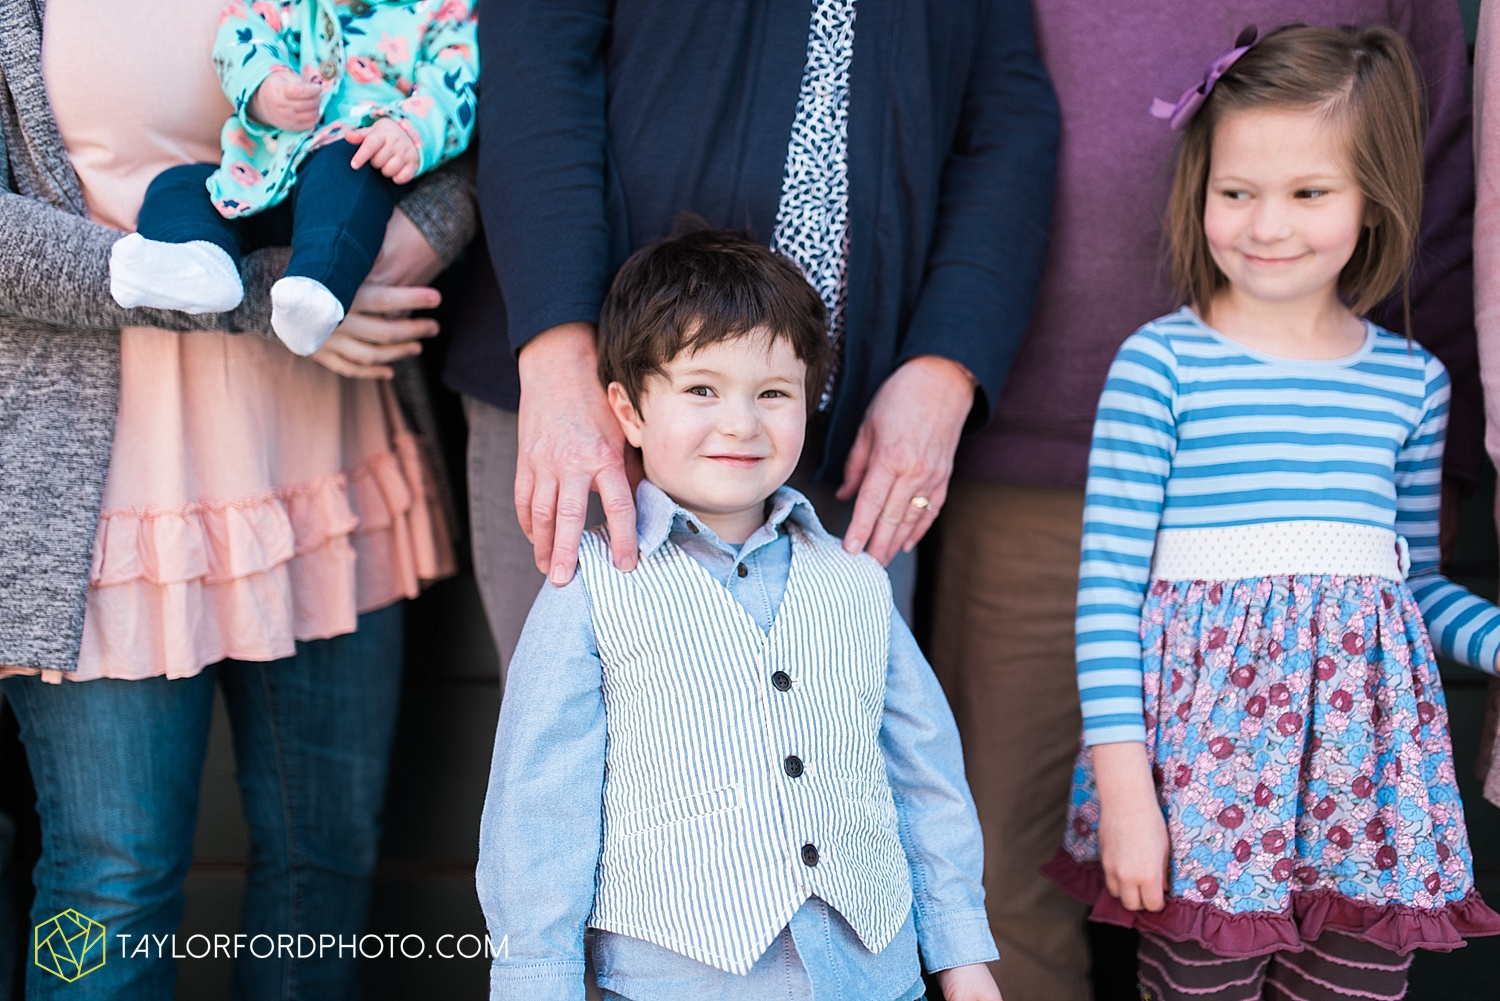 fort-wayne-indiana-family-photographer-taylor-ford-photography-van-wert-lima-ohio-soaff-park_1647.jpg